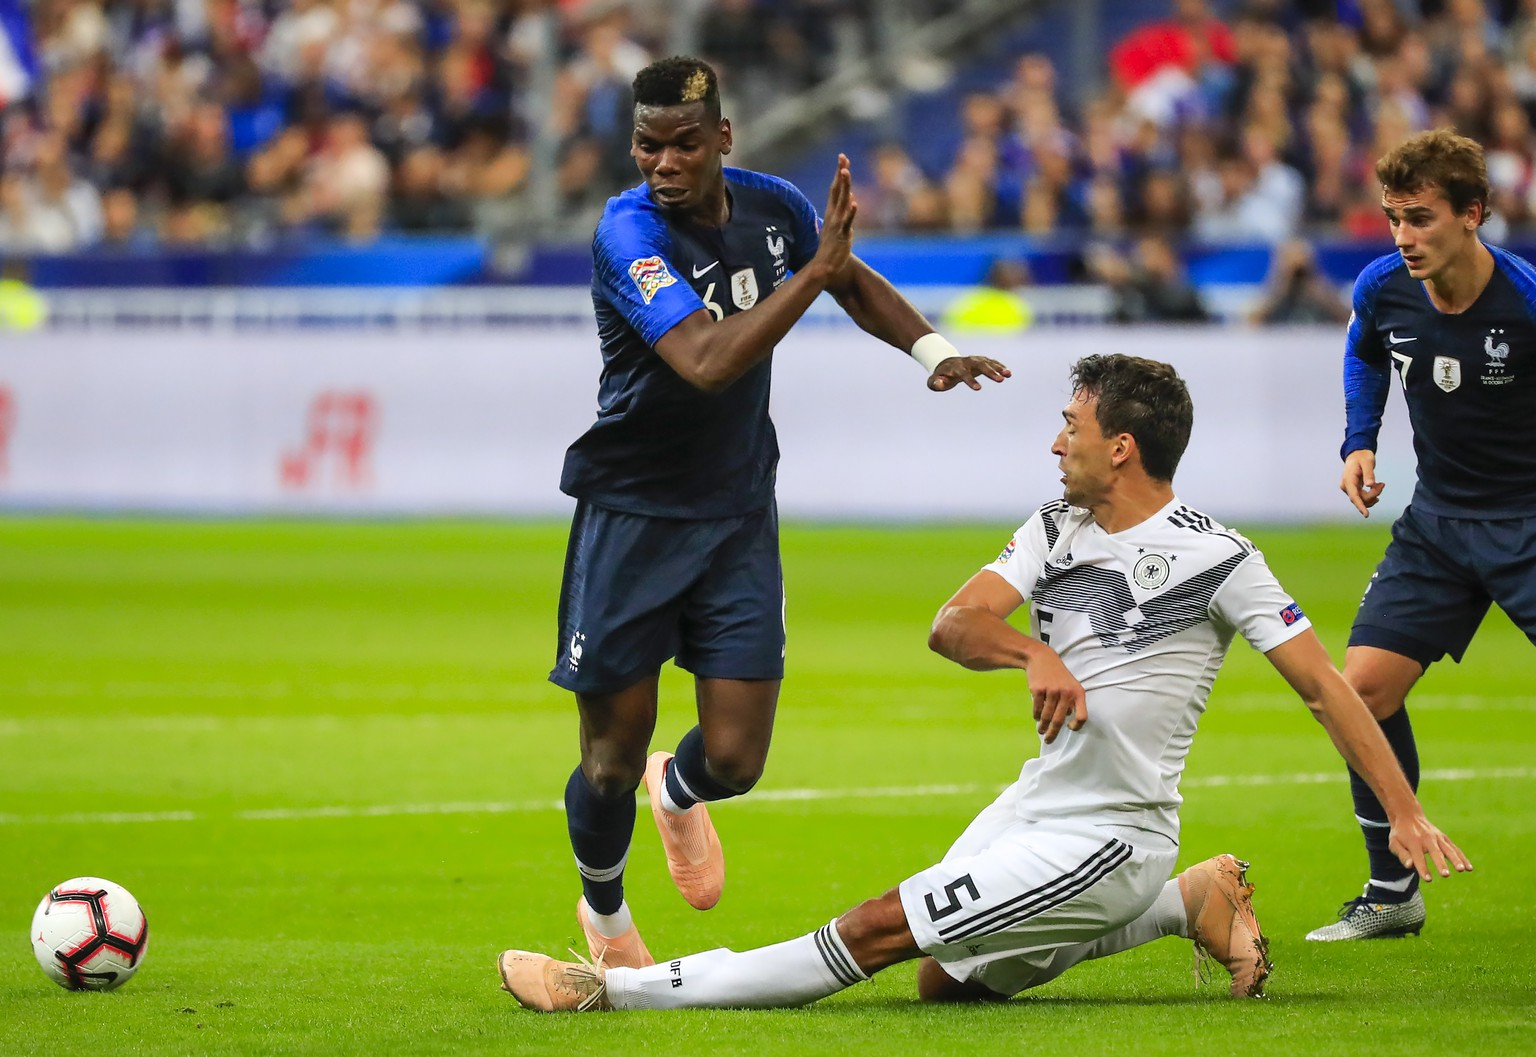 epa07098216 Paul Pogba (L) of France in action against German's Mats Hummels (R) during the UEFA Nations League soccer match between France and Germany in Saint-Denis, France on 16 October 2018.  EPA/Christophe Petit-Tesson